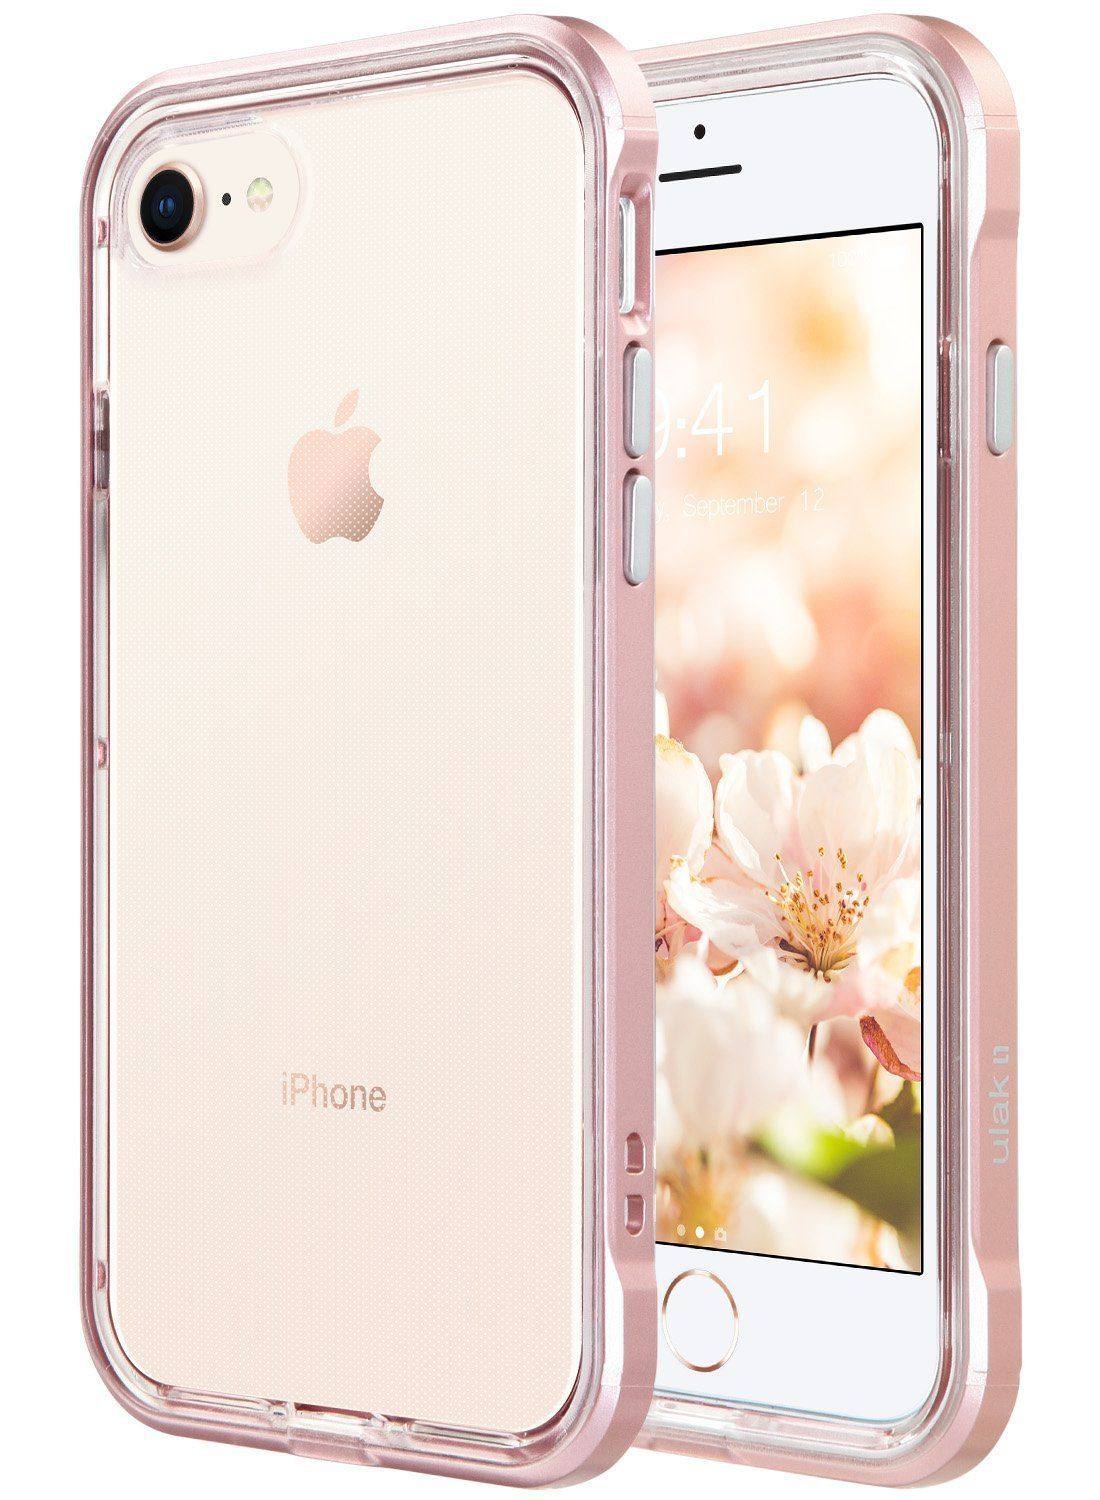 Iphone 8 Case Iphone 7 Case Ulak Reinforced Frame Crystal Clear Back Cover Durable Shock Absorption Flexible Soft Ru Iphone 7 Cases Iphone Iphone Phone Cases